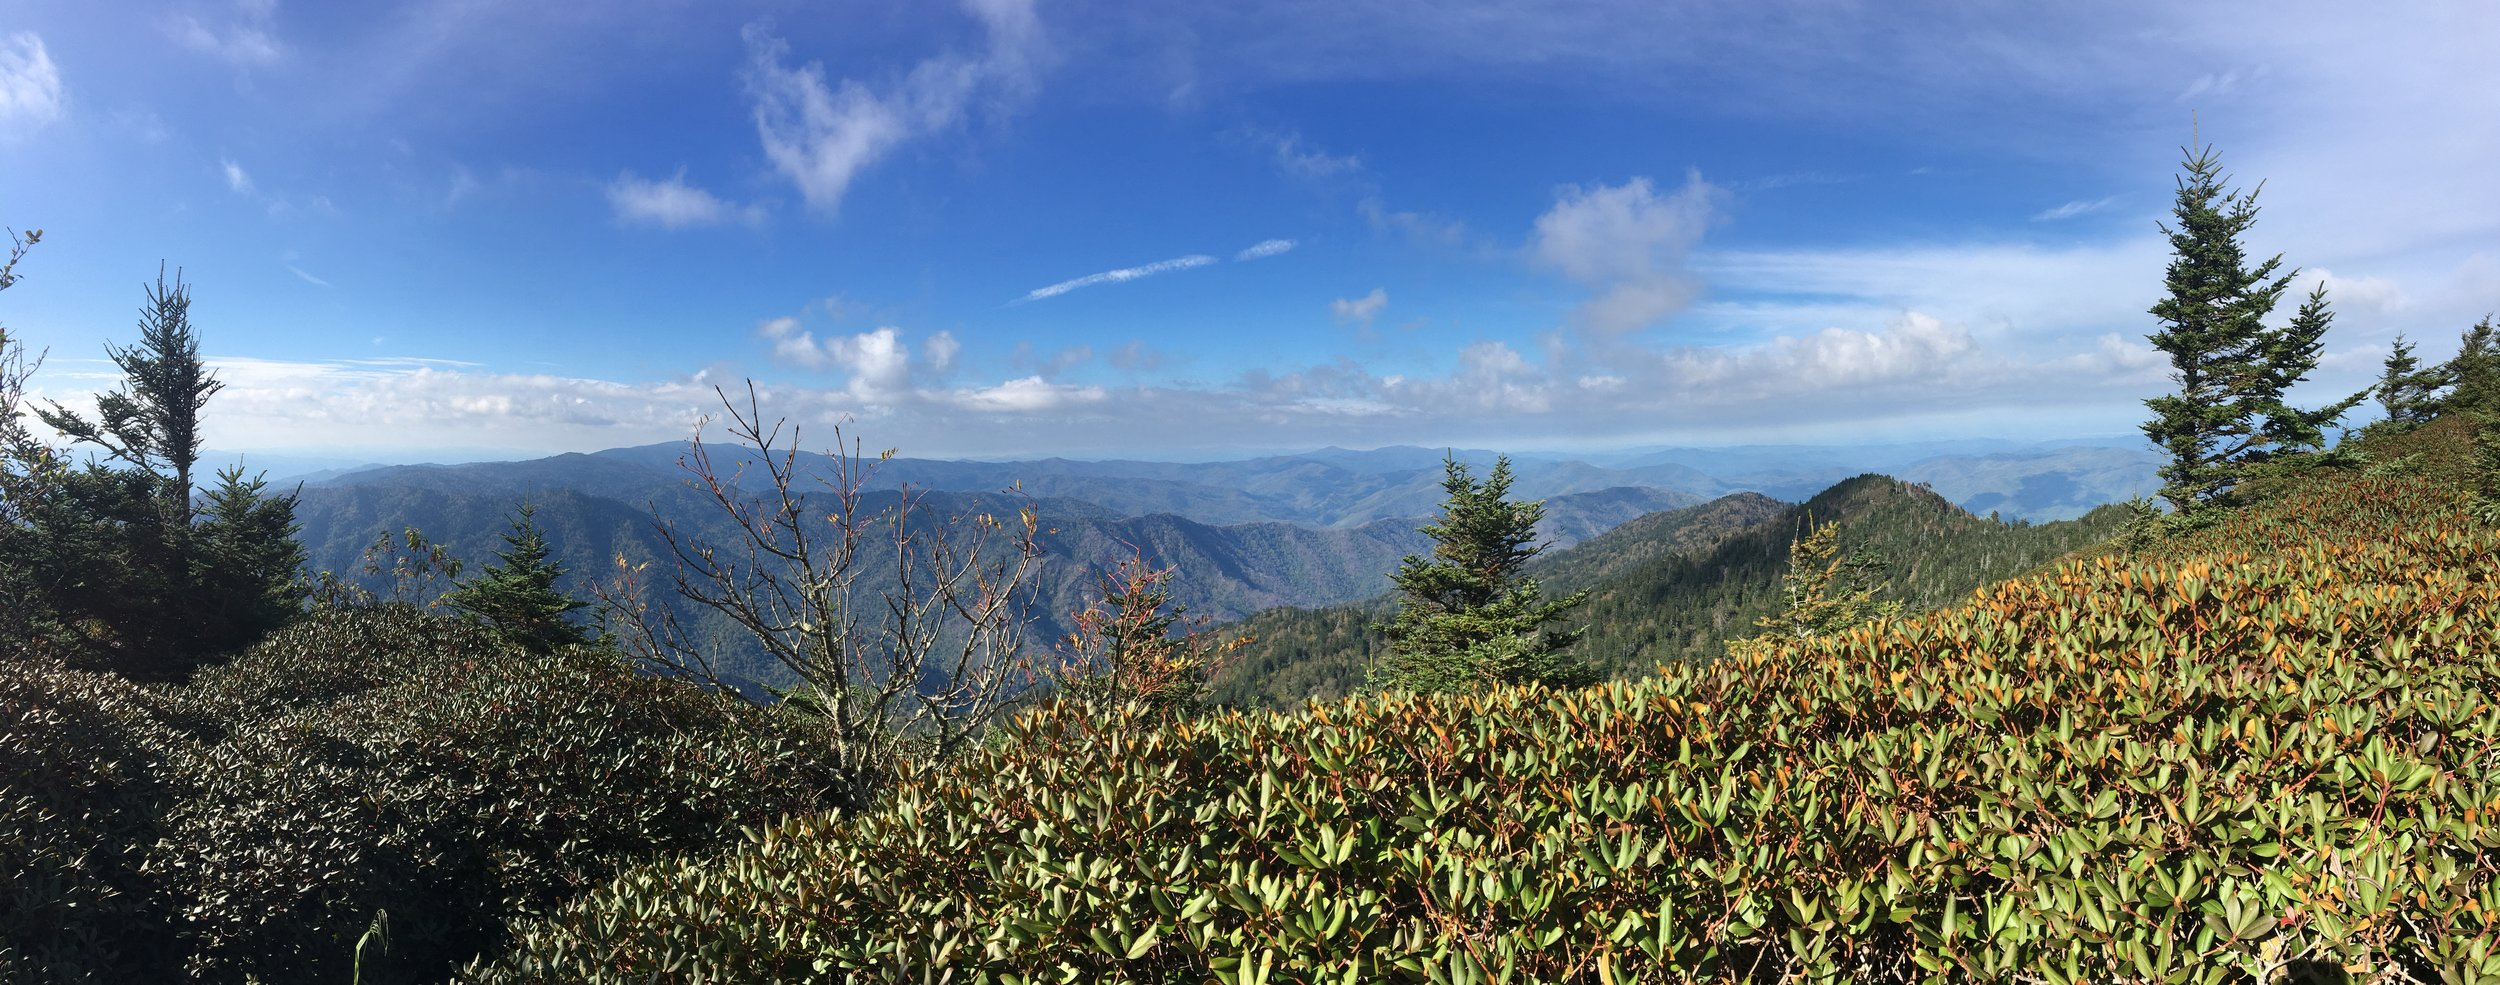 The view from Mt LeConte